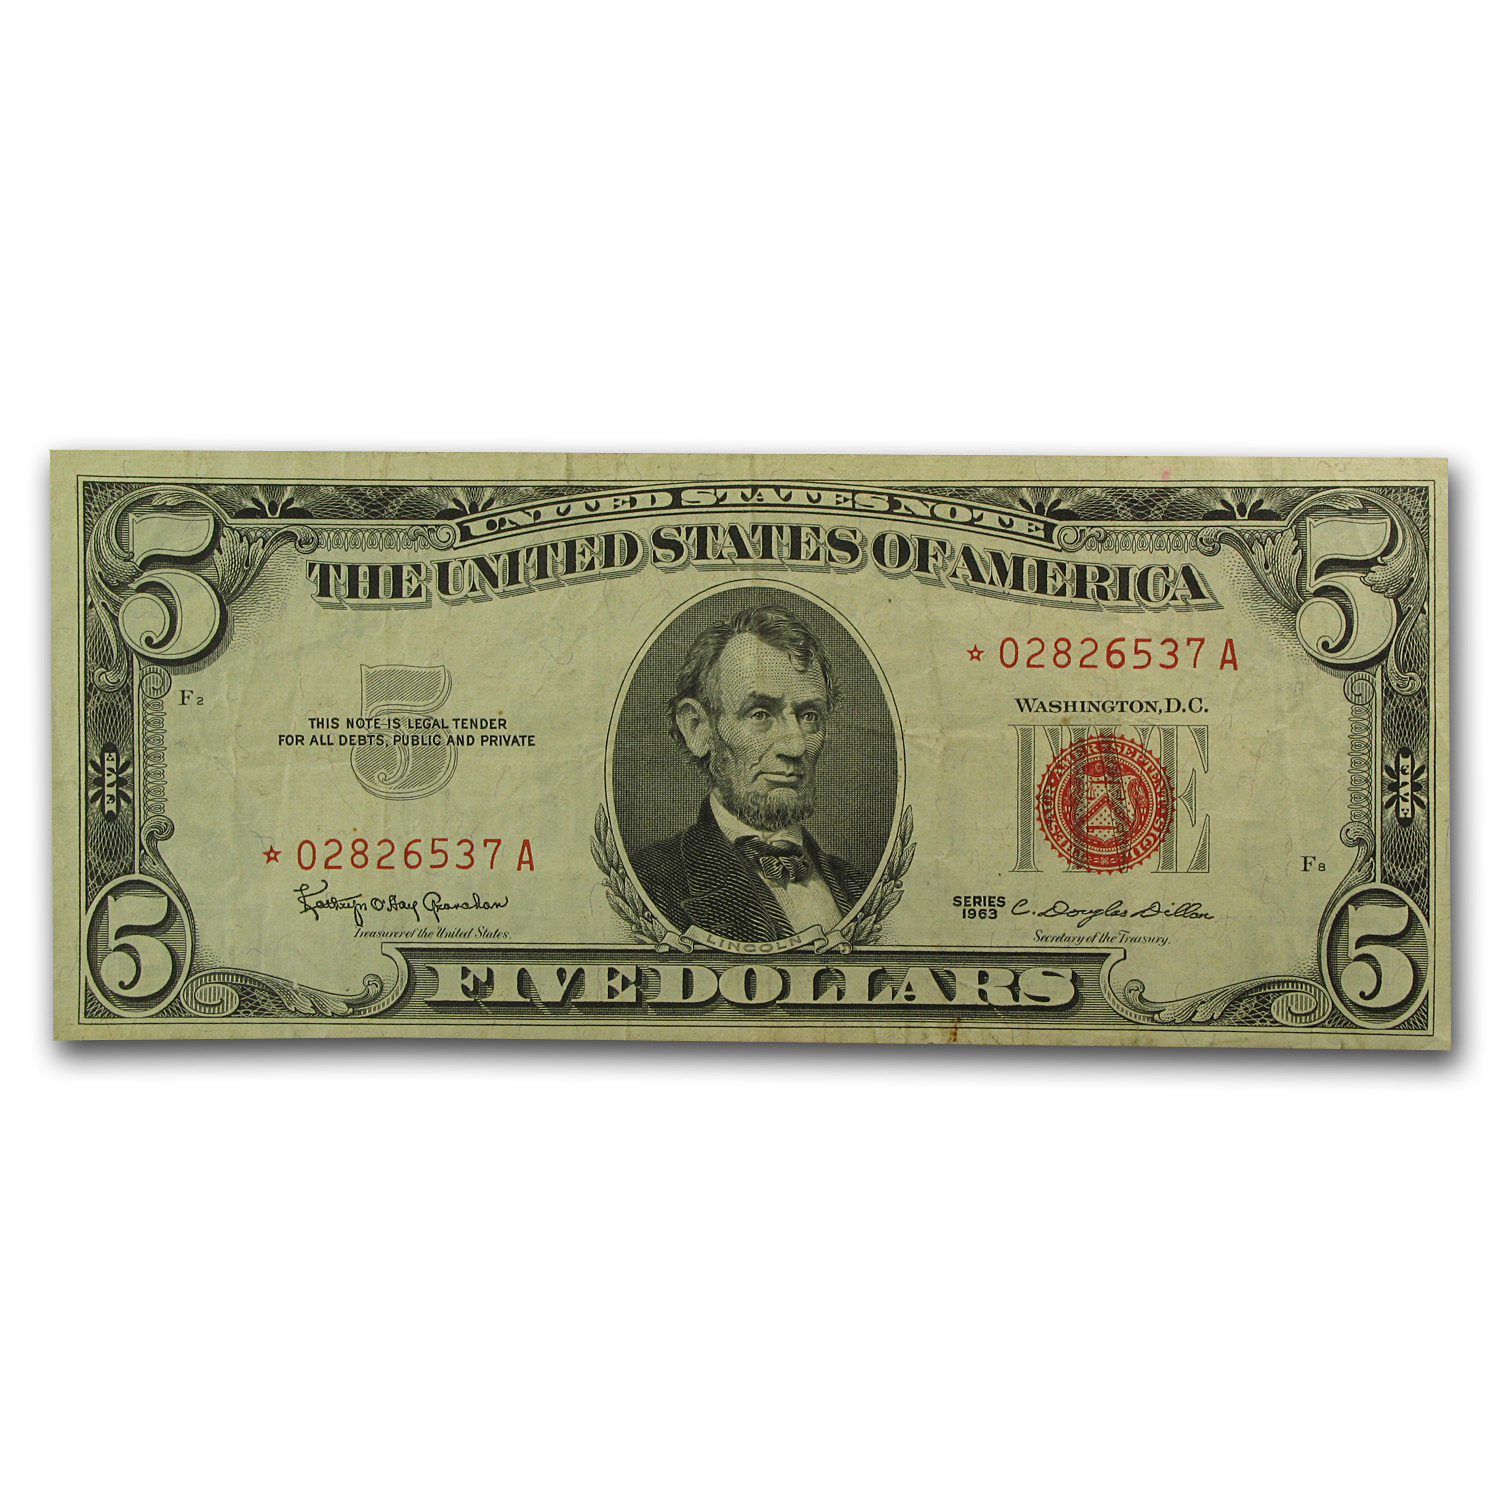 1963* $5.00 U.S. Note Red Seal VF (Star Note)